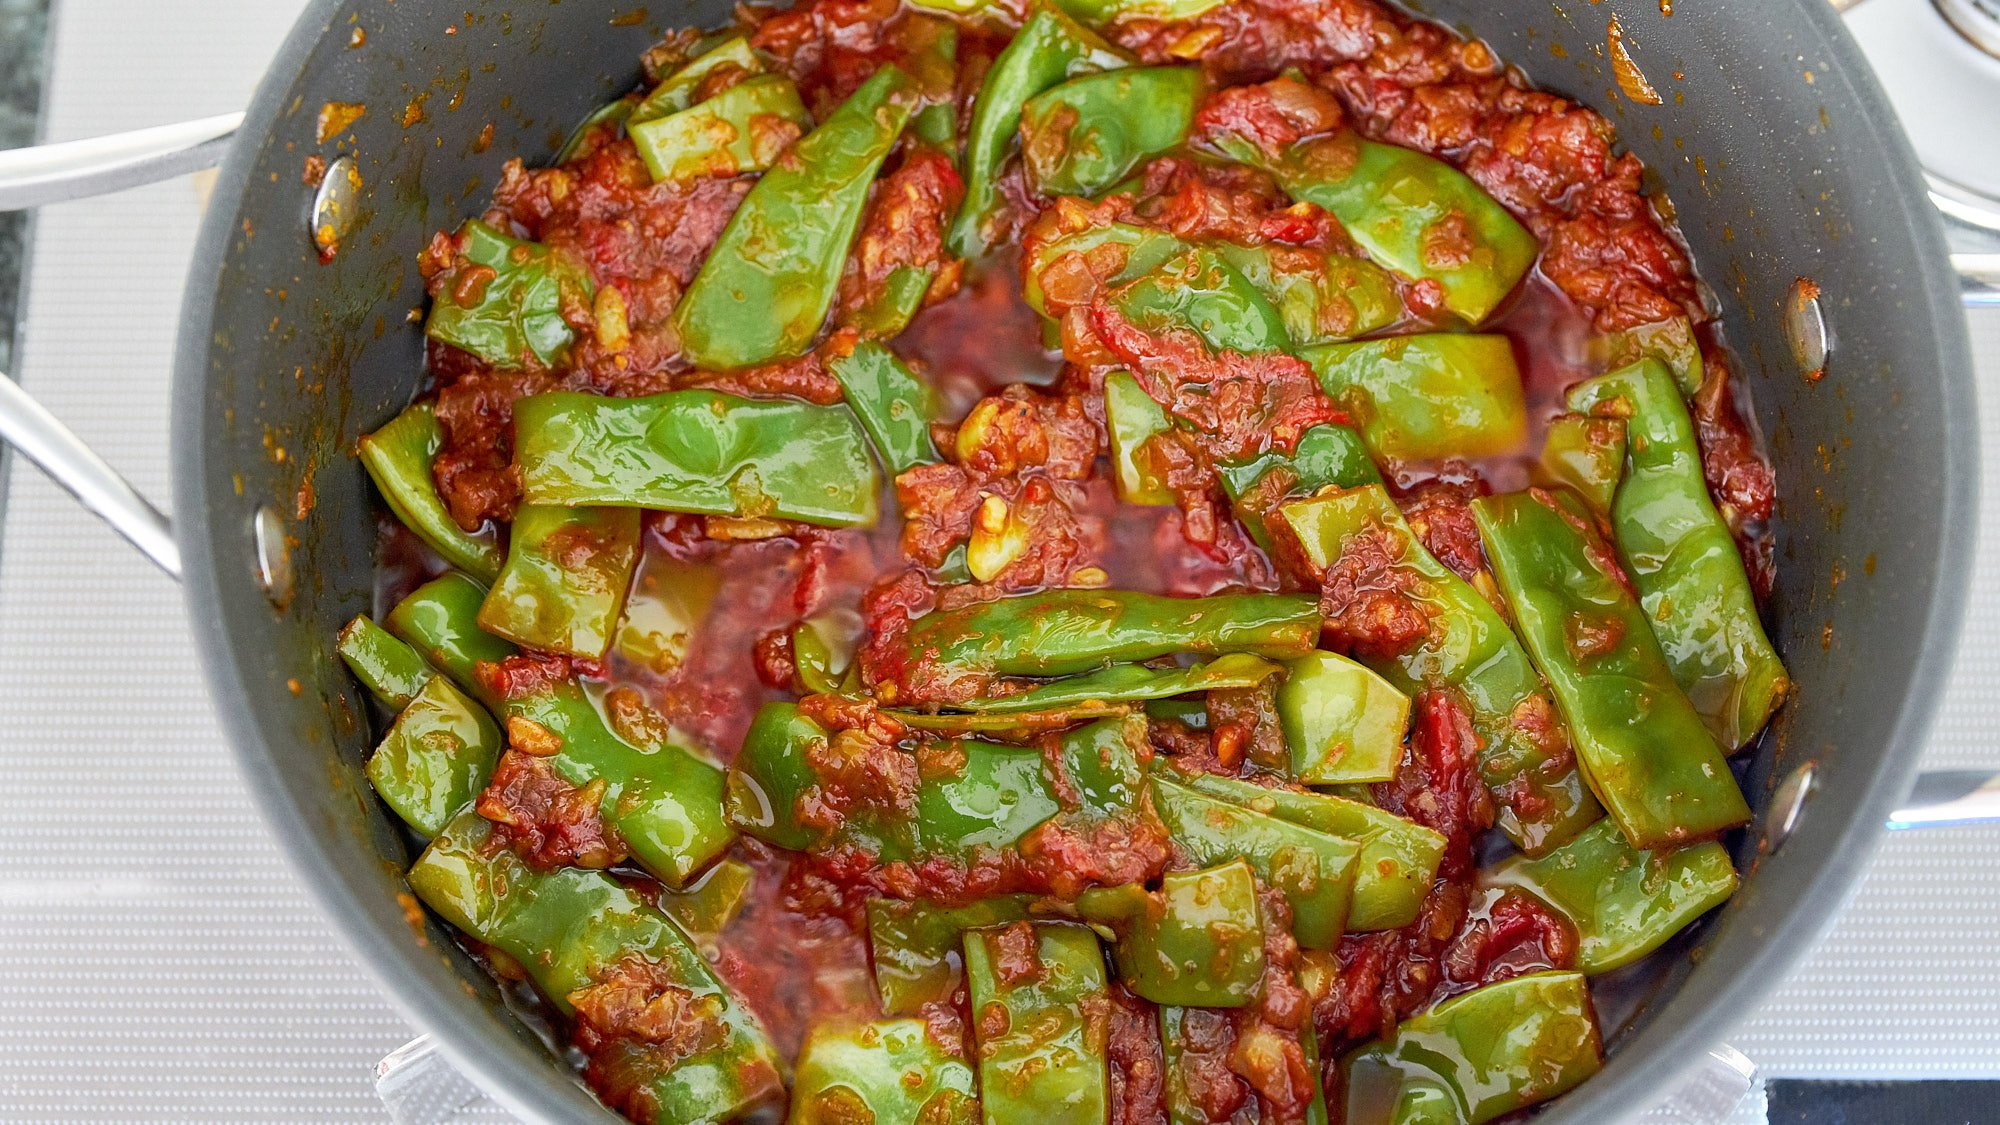 Your Loubieh Bi Zeit is done when the green beans are tender.